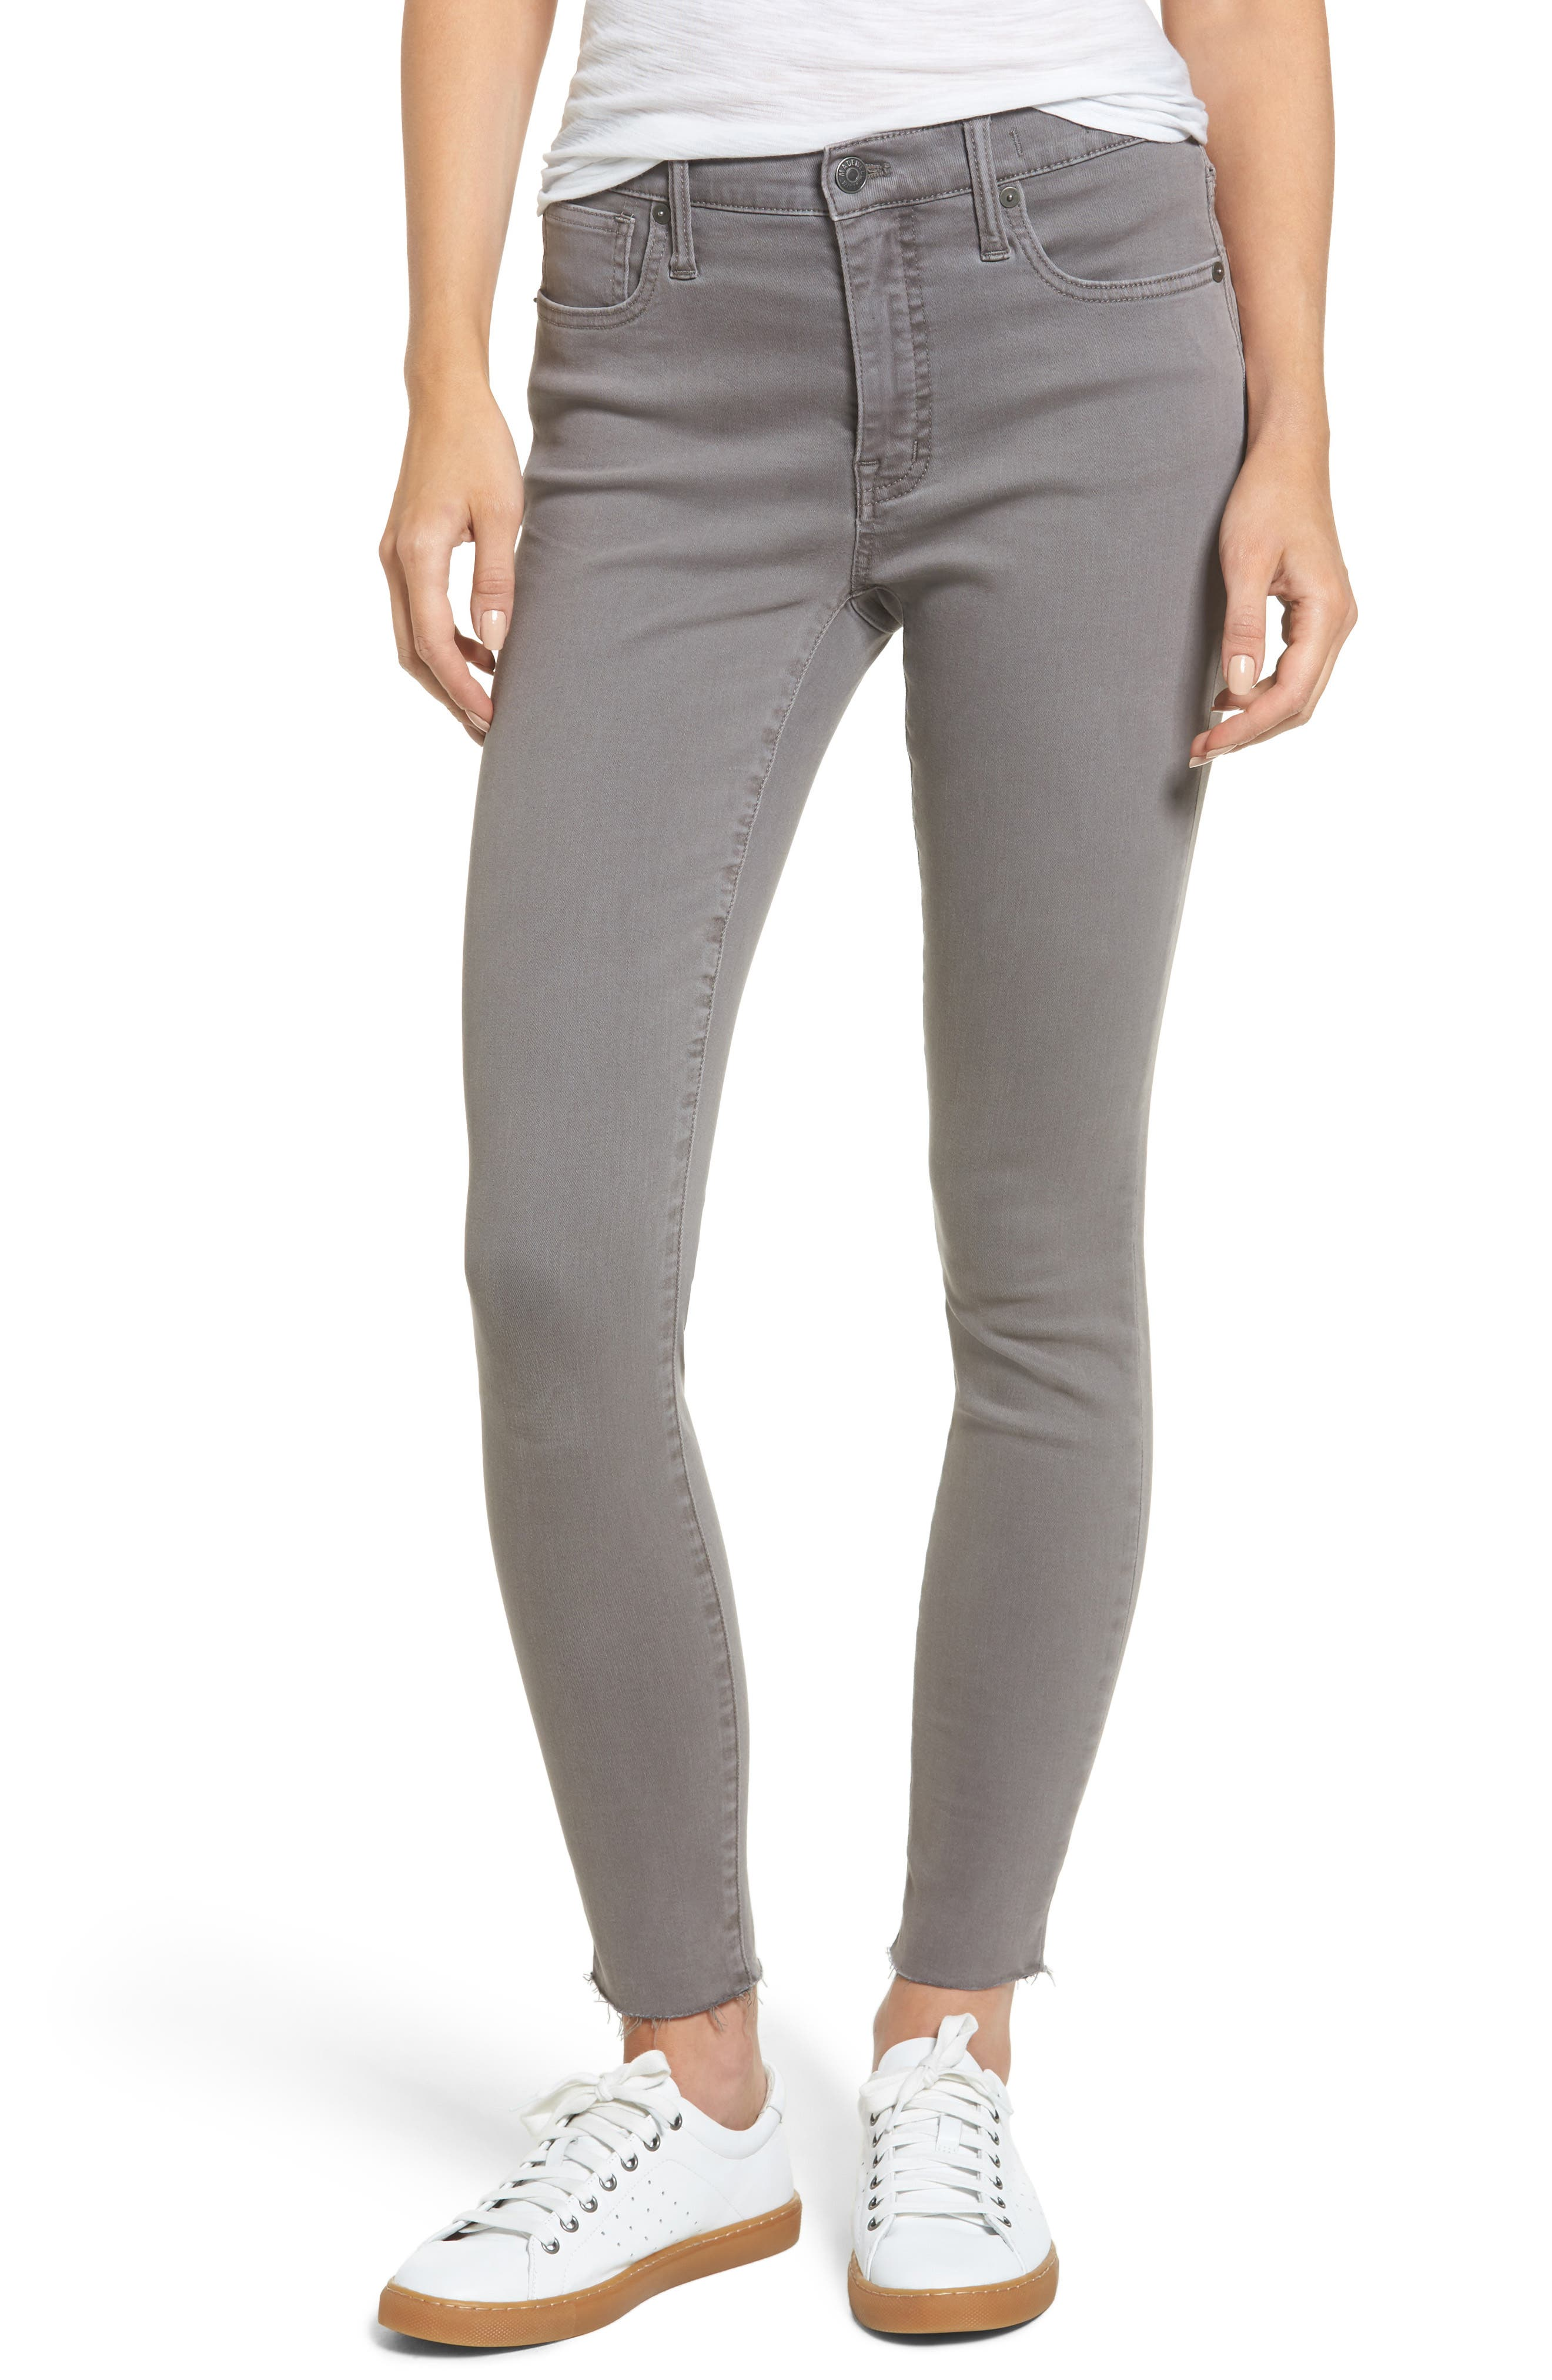 9-Inch High-Rise Skinny Jeans: Raw-Hem Garment-Dyed Edition,                             Main thumbnail 1, color,                             020